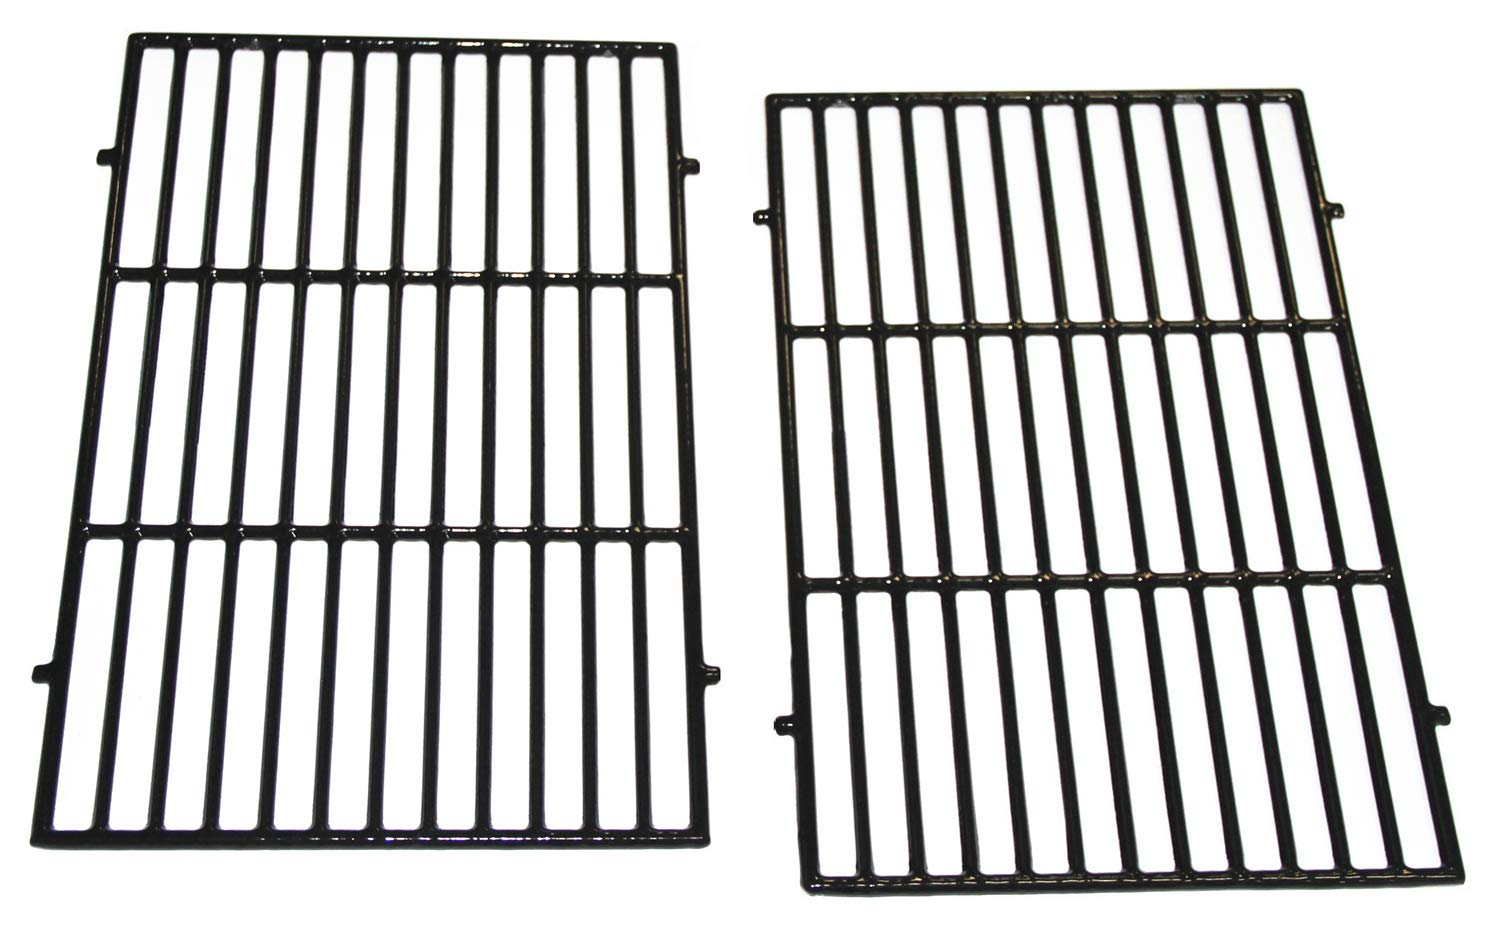 "VICOOL hy7638 Porcelain Coated Cast Iron Grill Grates for Weber Spirit 300 Series, Spirit 700, Genesis Silver B/C, Genesis Gold B/C, Genesis 1000-5000, 7638 7639 7525 7526 7527(17.5"" x 11.9"" x 0.5"")"